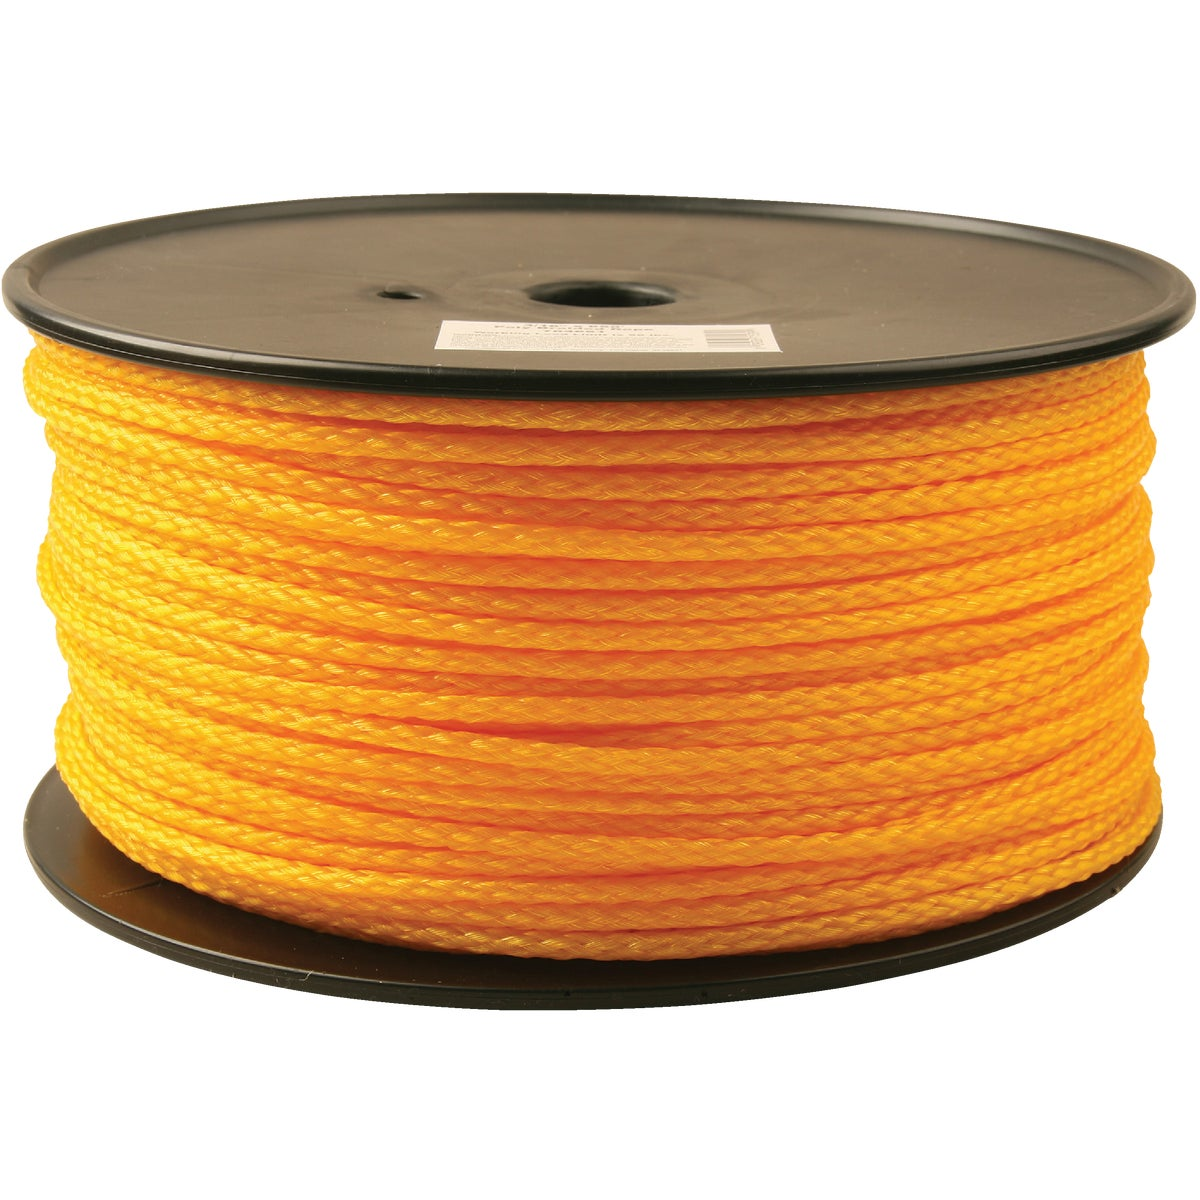 3/16X380' POLYBRAID ROPE - 704651 by Do it Best